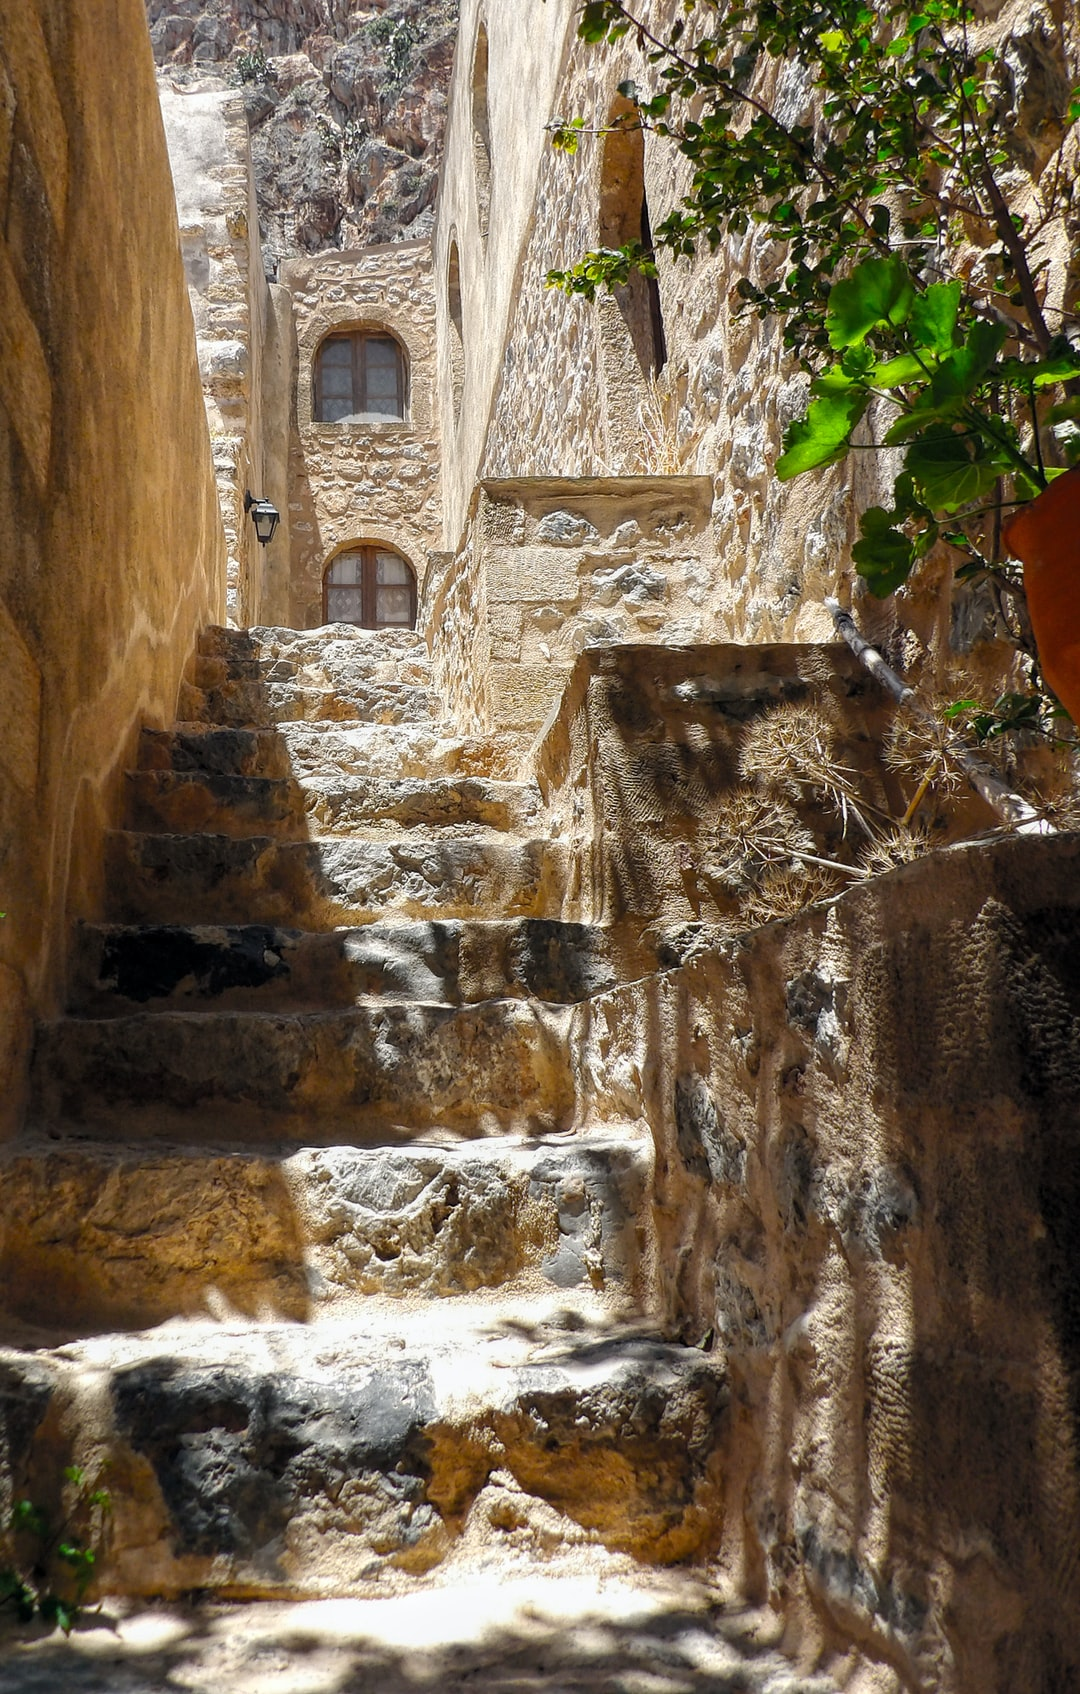 Stairs in the old town of Monemvasia